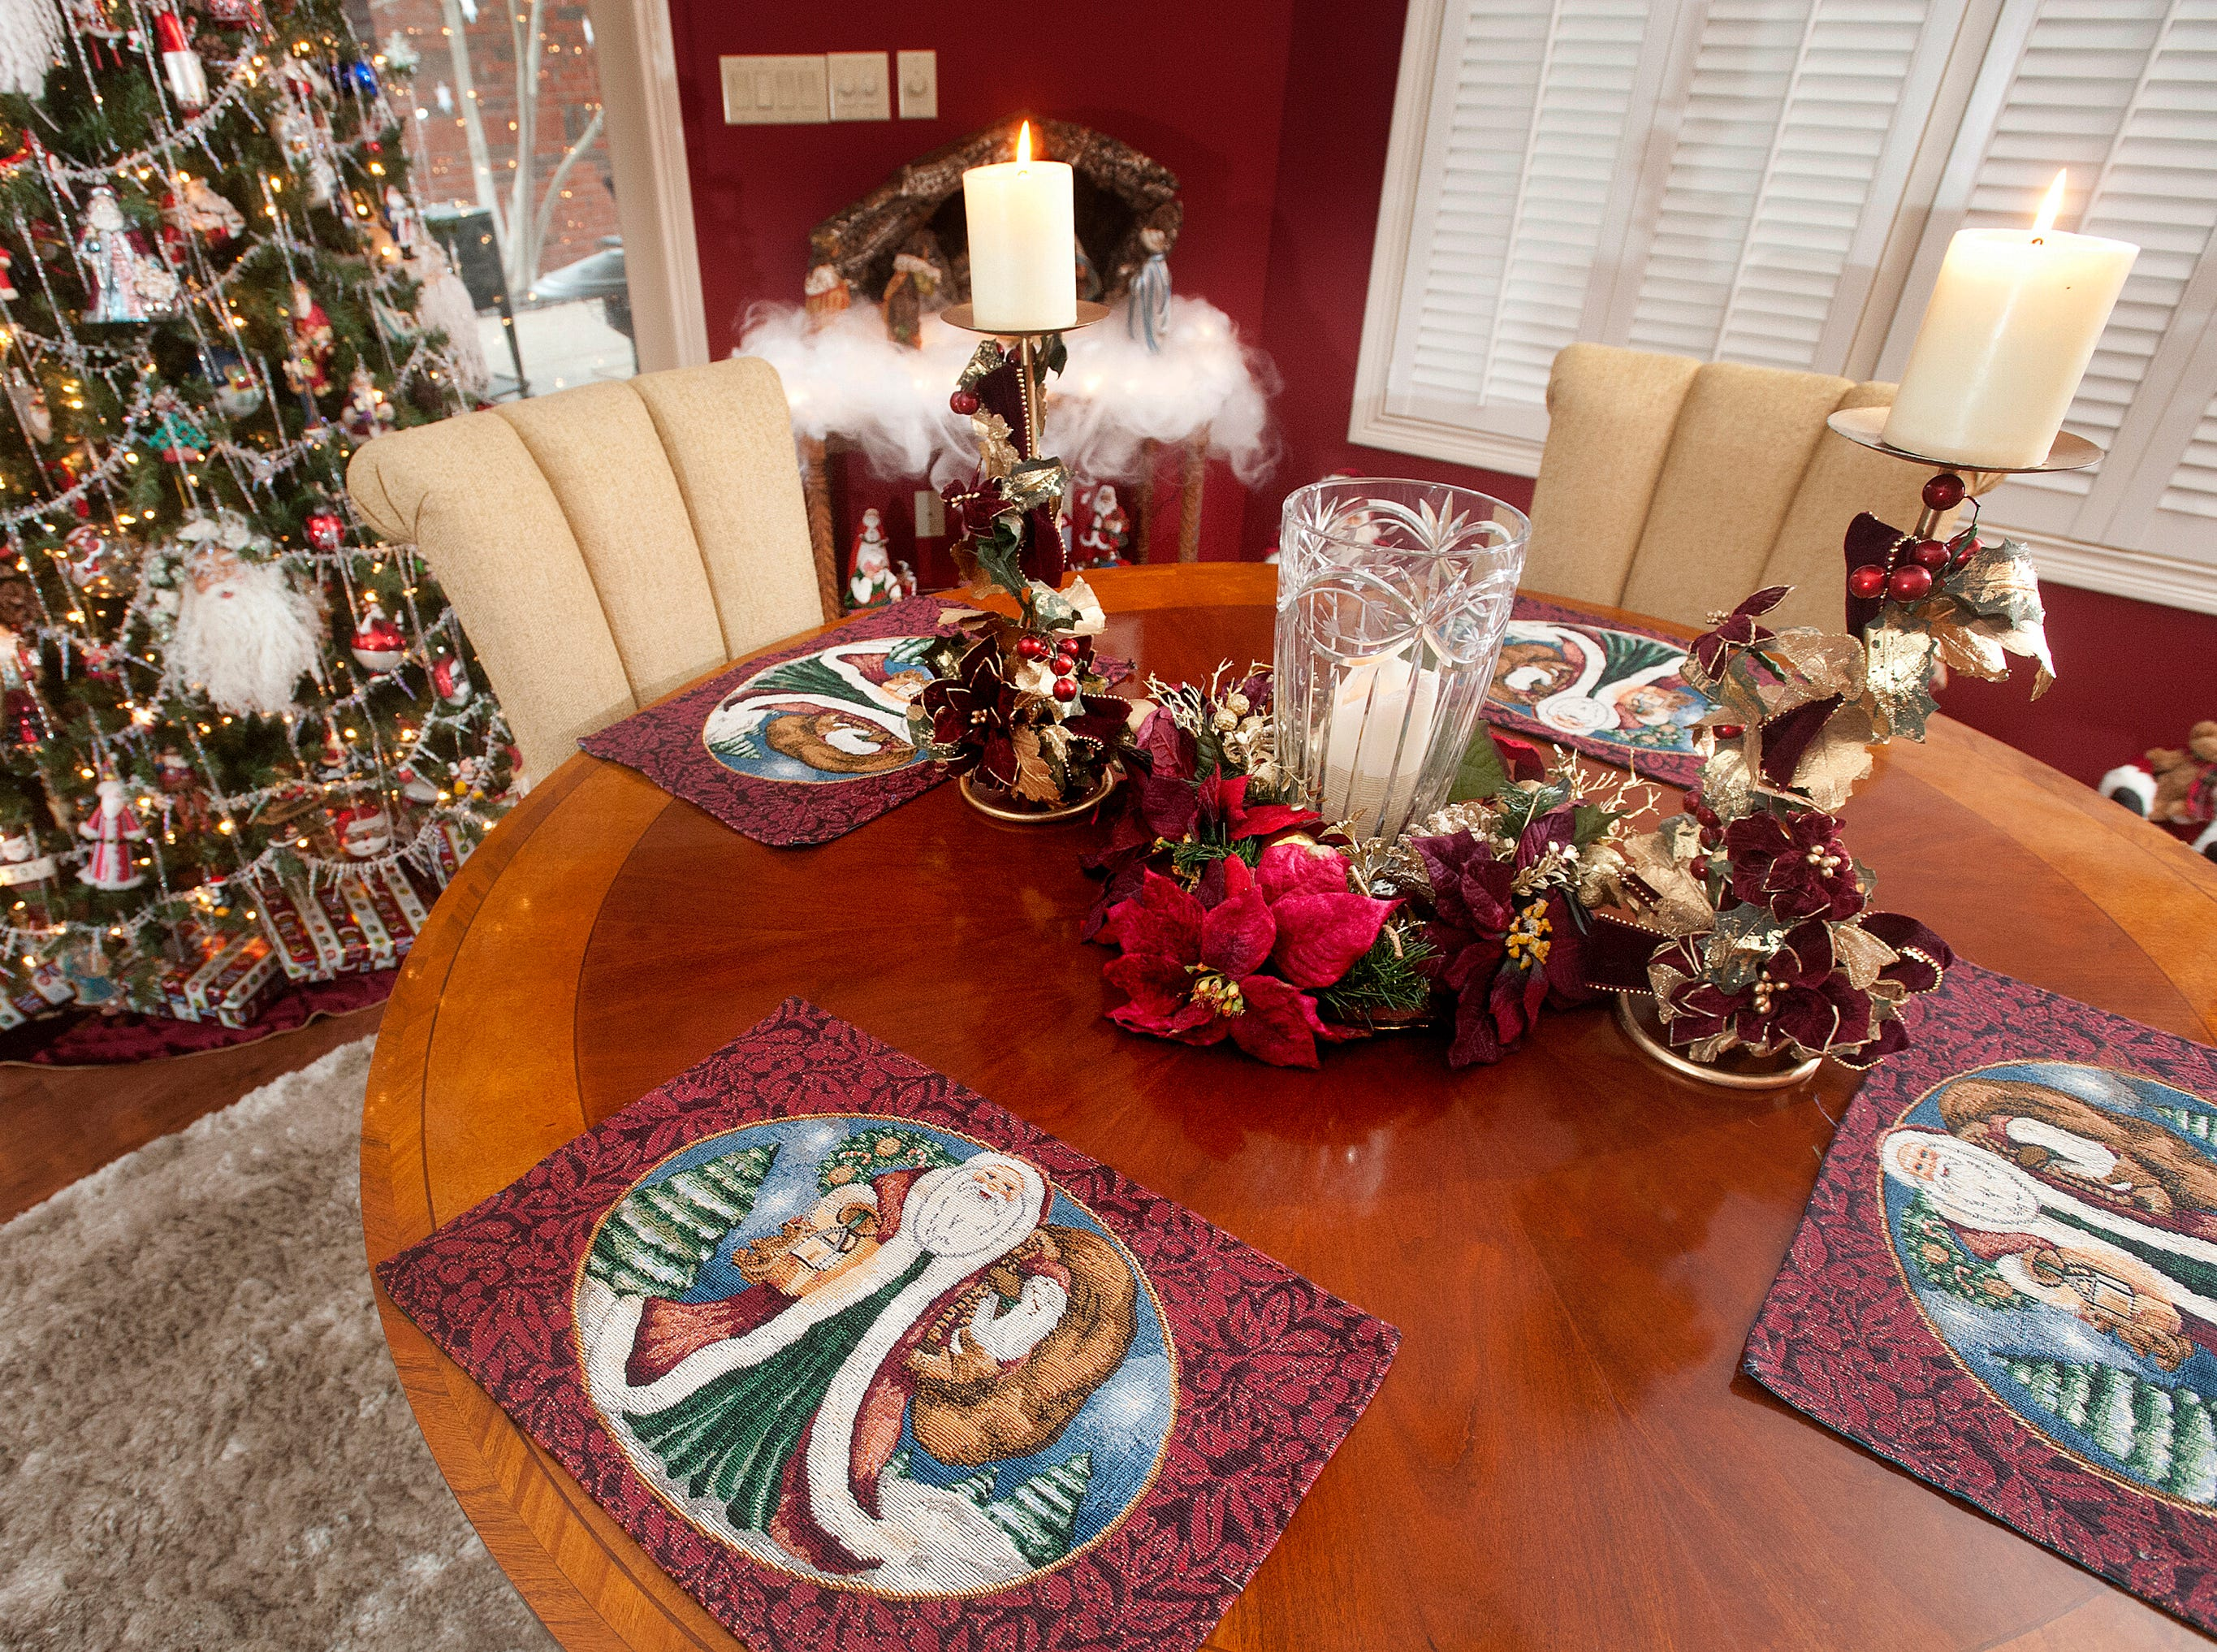 Santa placemats are part of the dining room decor.